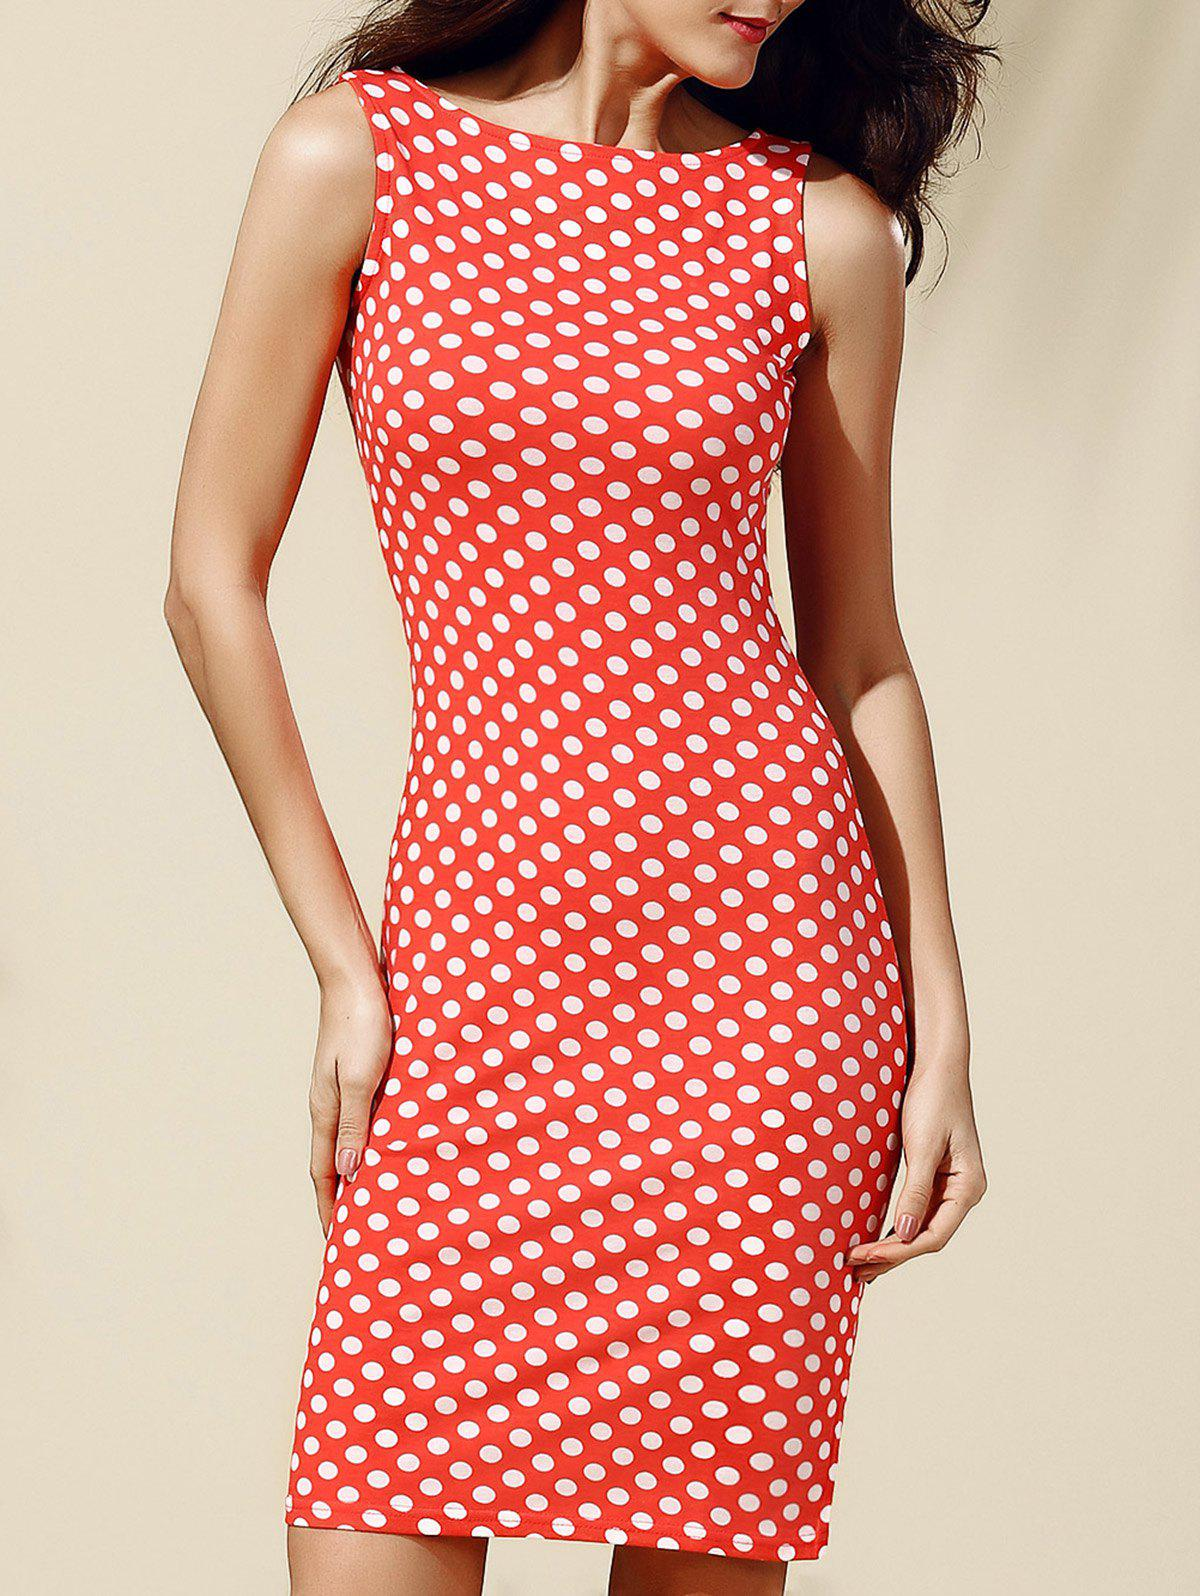 Chic Sleeveless Polka Dot Jewel Neck Dress For Women - ORANGEPINK S